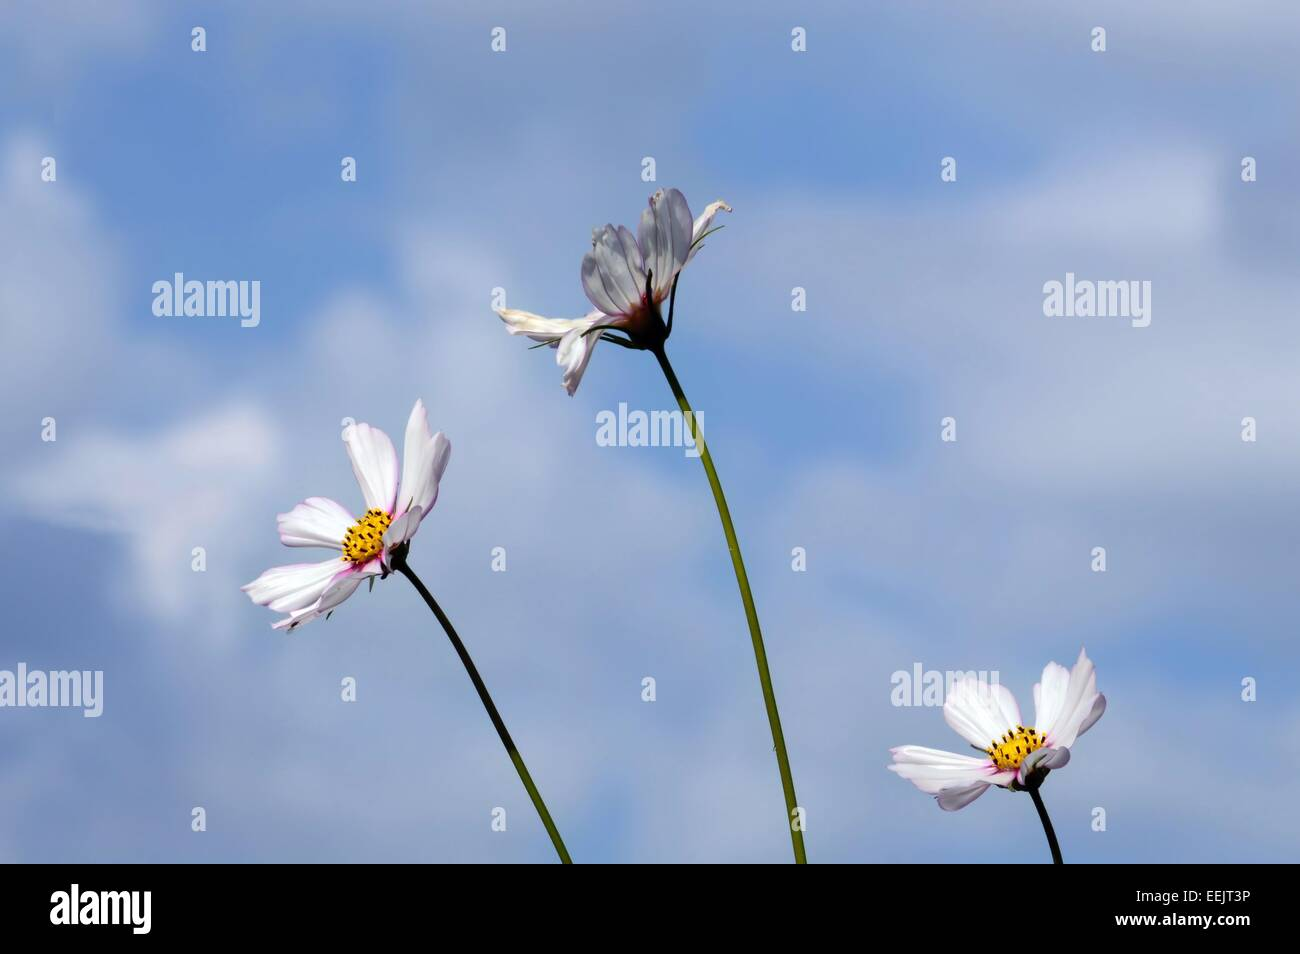 White puffy flowers stock photos white puffy flowers stock images three white flowers against blue sky with white puffy cloudscosmosflowers in the mightylinksfo